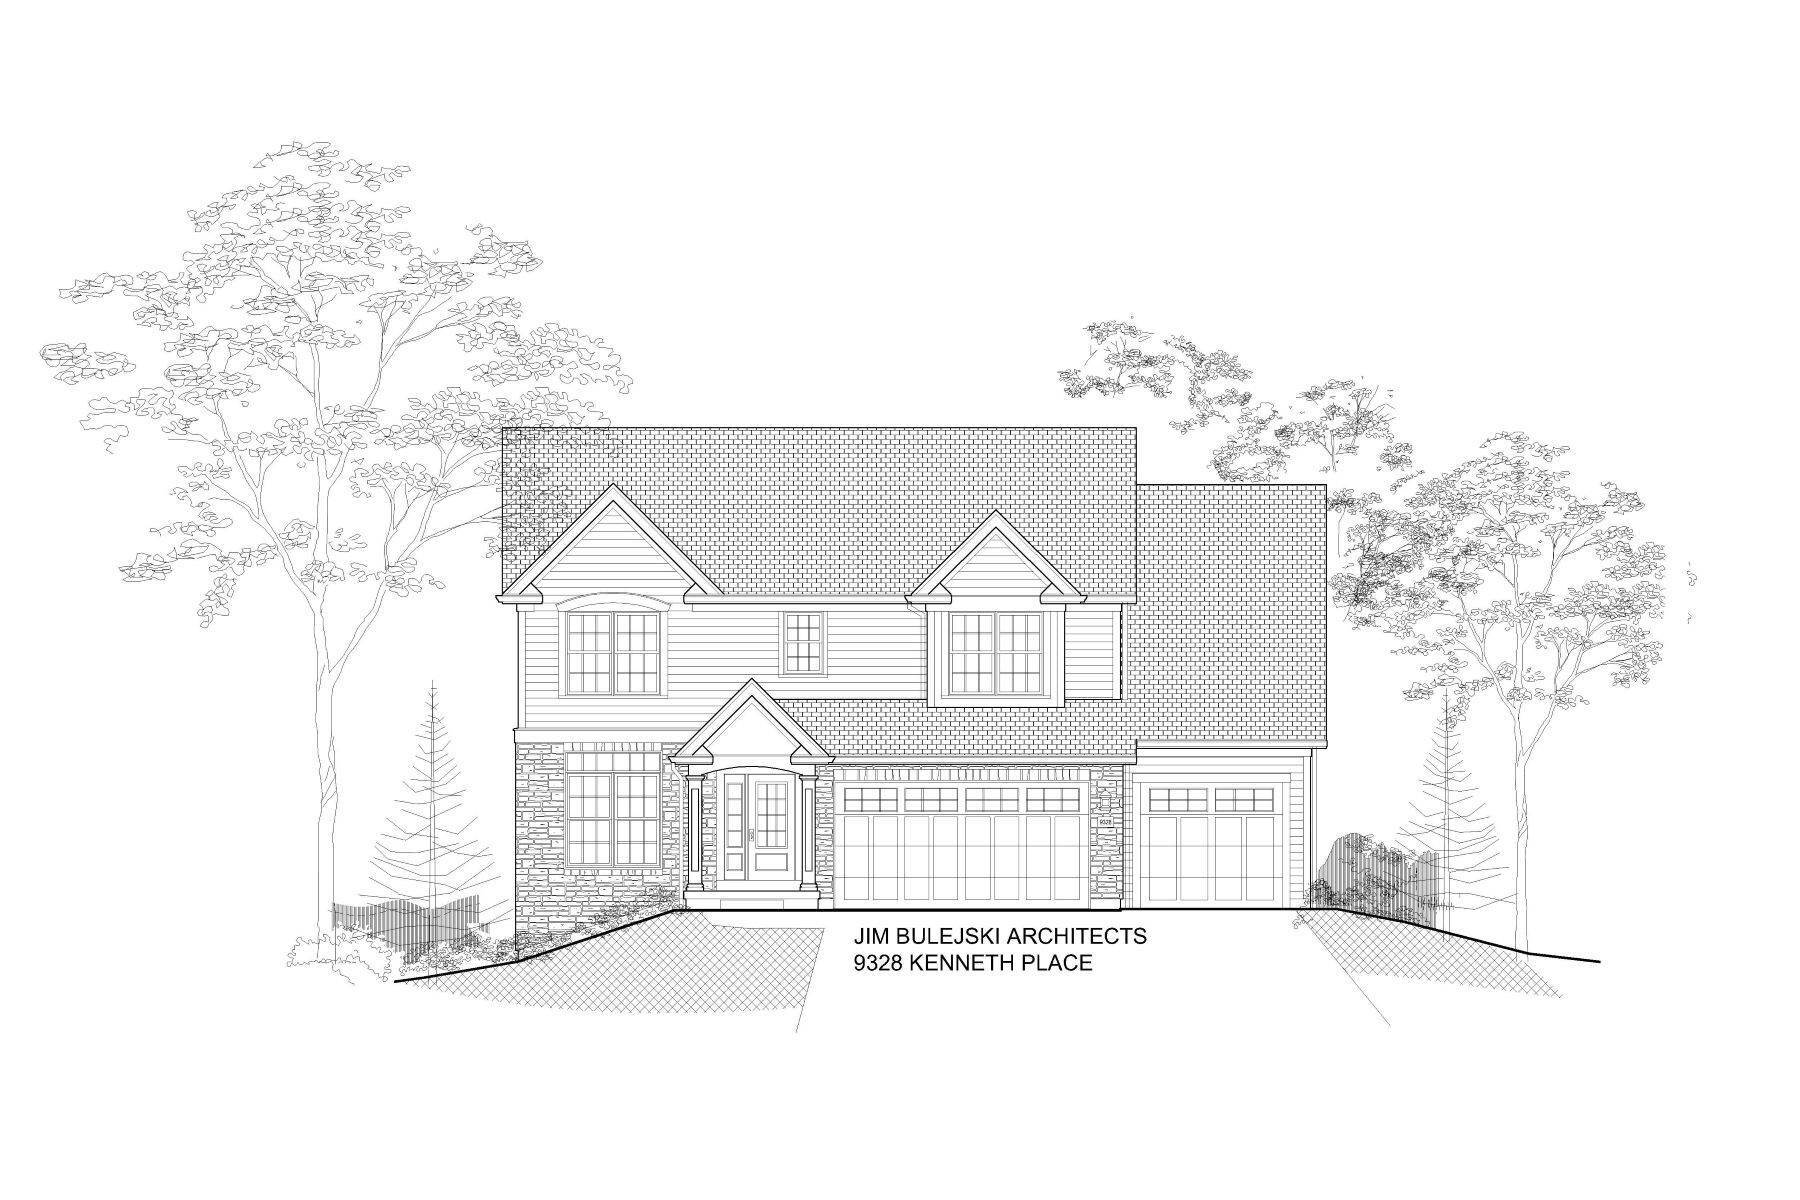 Property for Sale at Great Opportunity To Build Your Dream Home 9328 Kenneth Place Olivette, Missouri 63132 United States